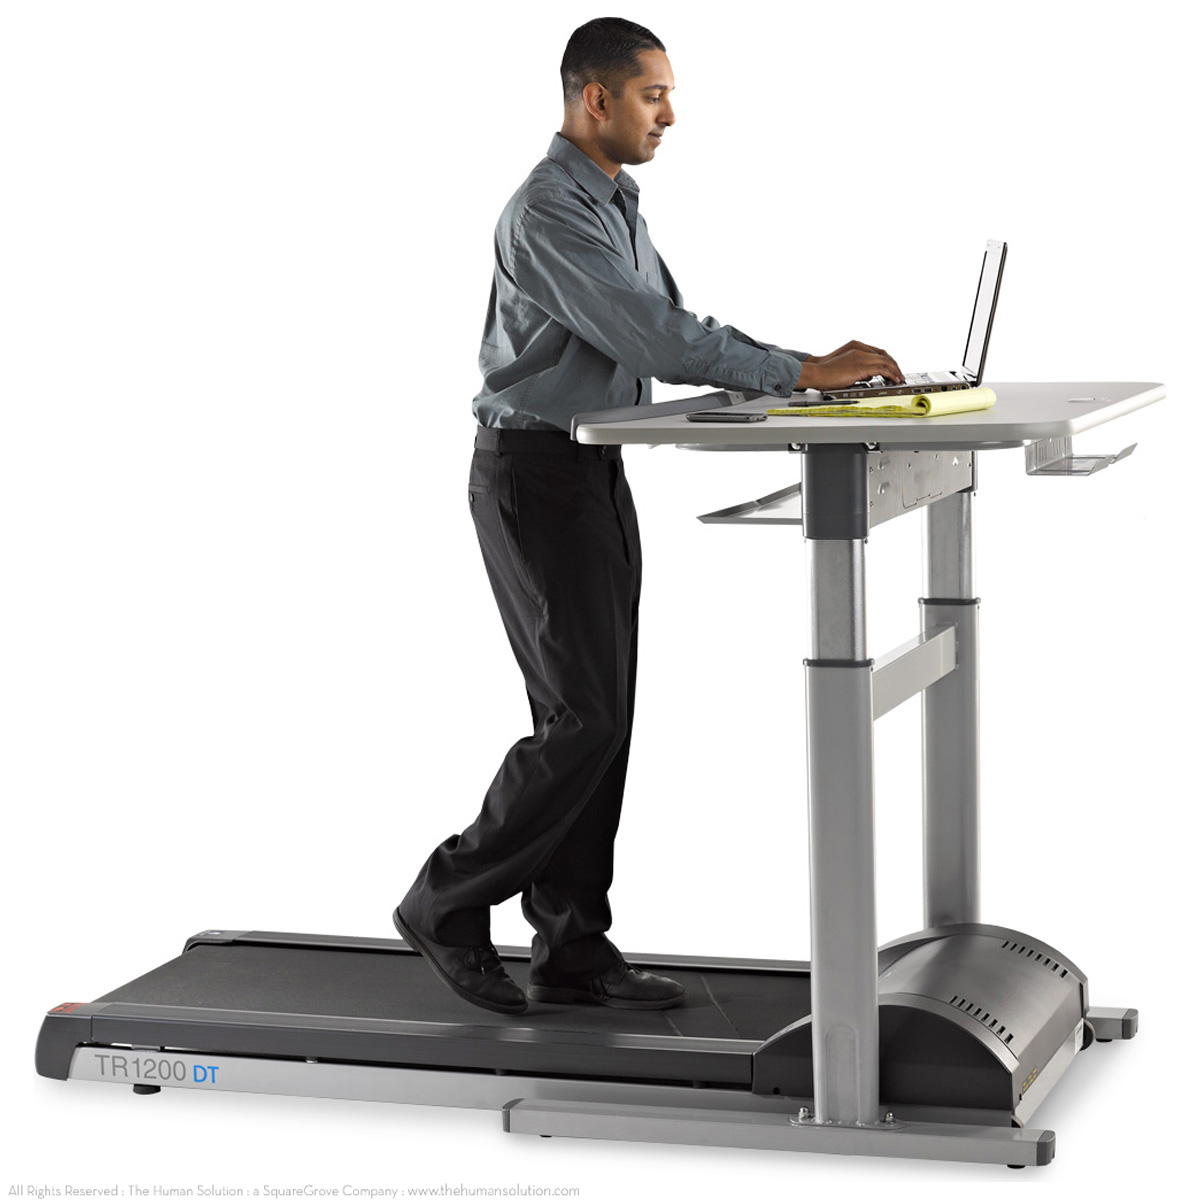 Treadmill For Desk At Work: LifeSpan TR1200-DT7 Treadmill Desk